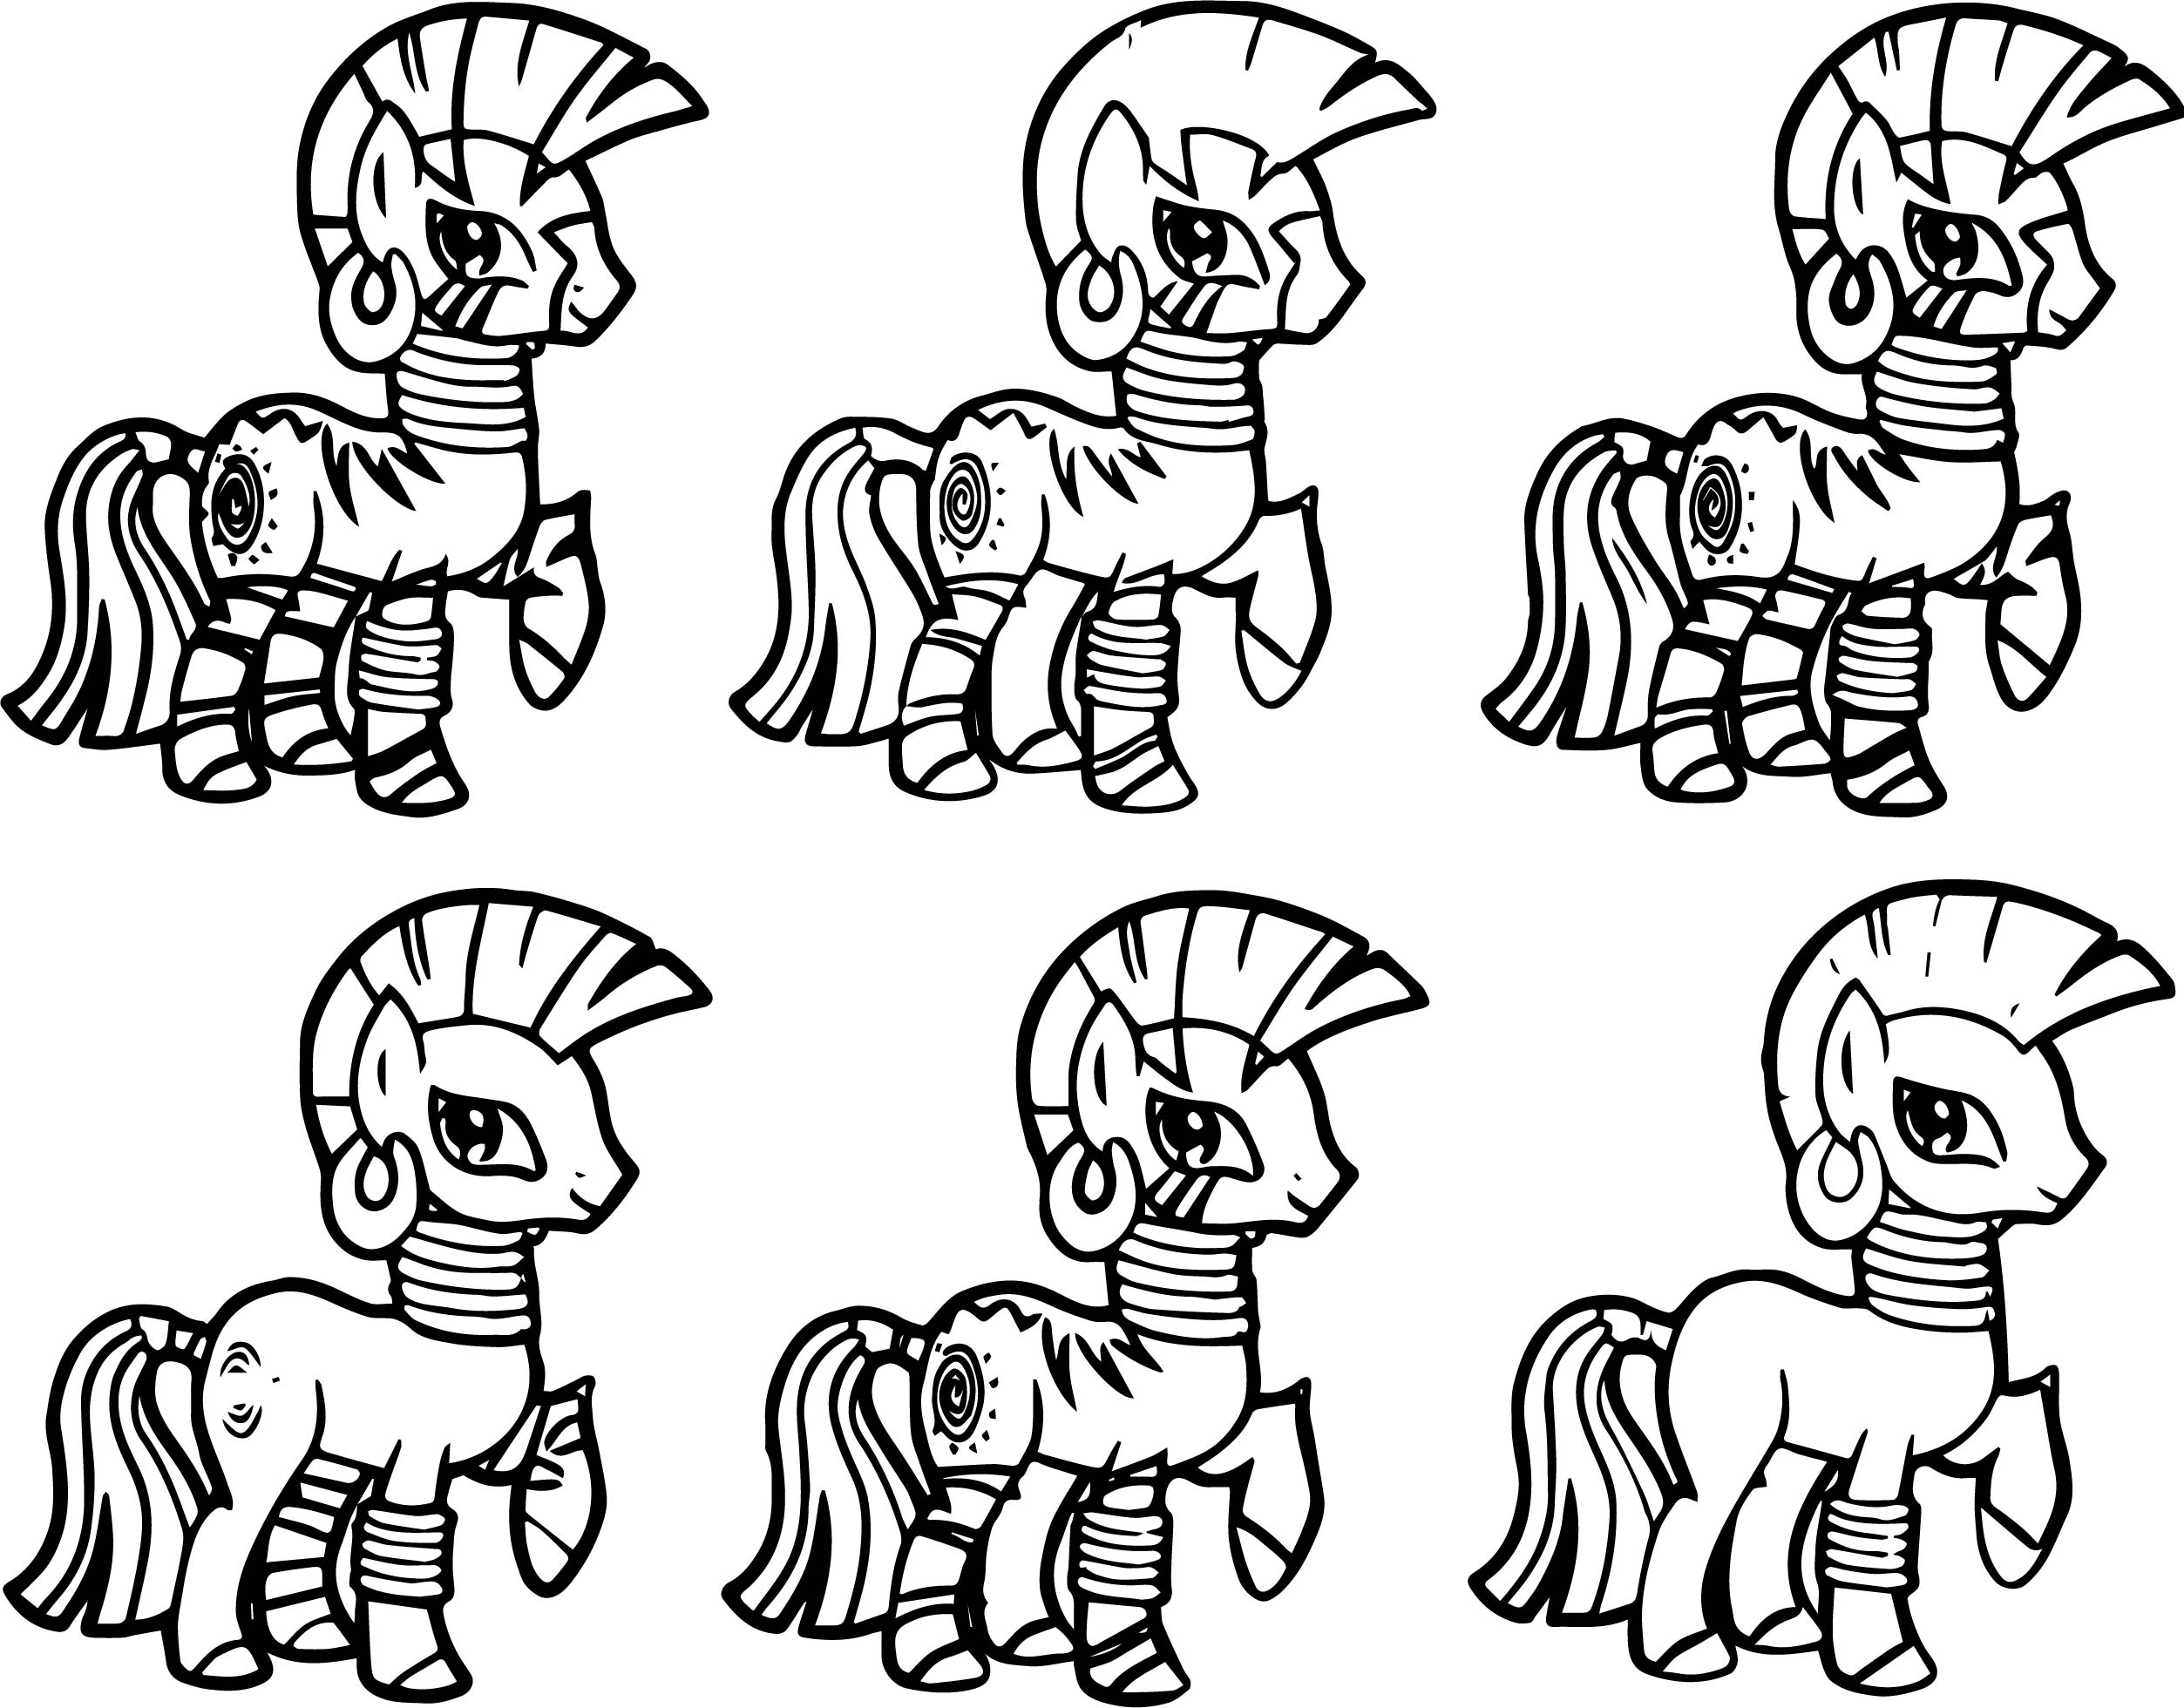 My Little Pony Zecora Coloring Pages : Fim skins zecora coloring page wecoloringpage